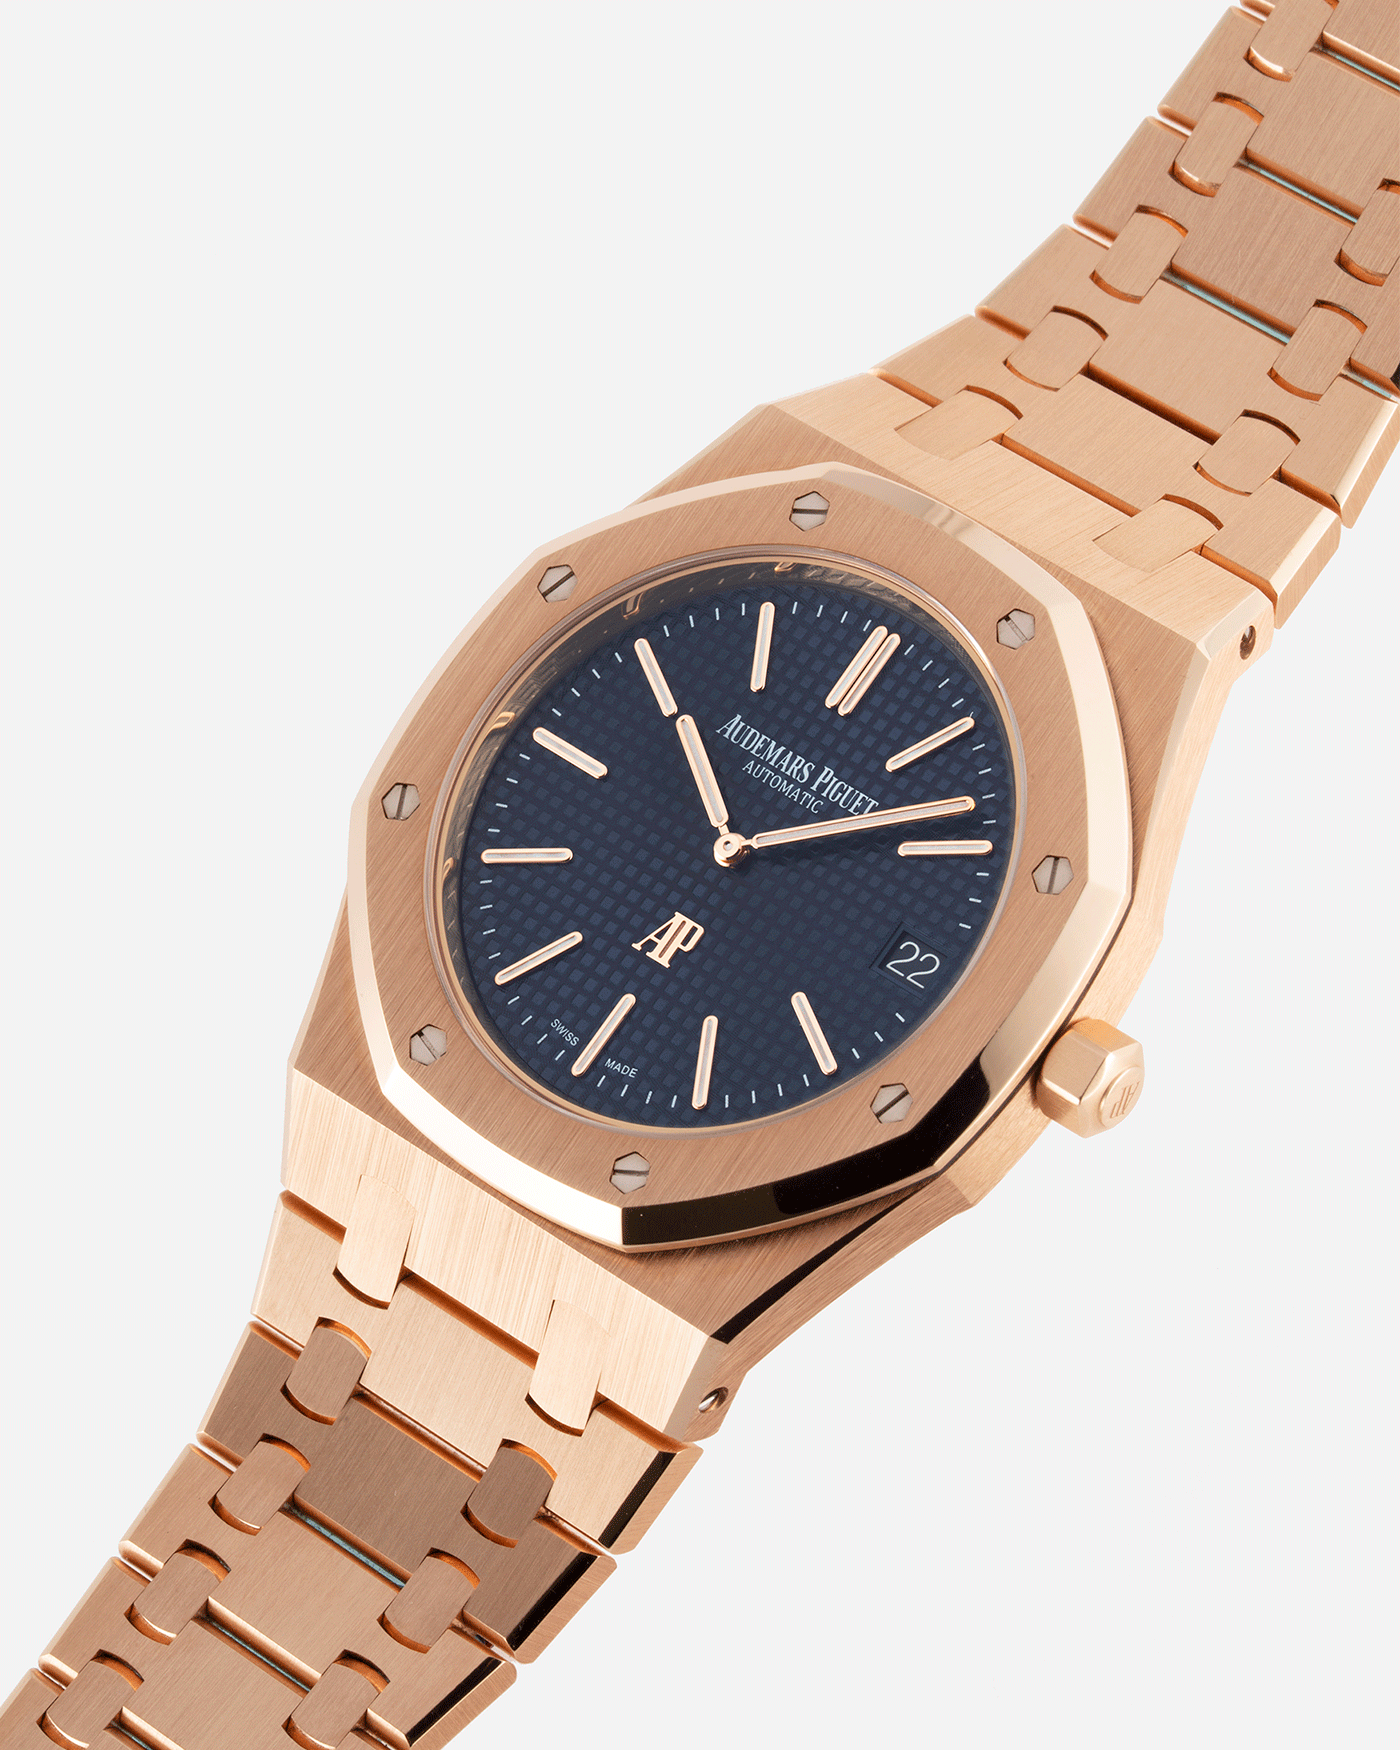 Brand: Audemars Piguet Year: 2019 Model: Royal Oak Reference Number: 15202OR Material:18k Rose Gold Movement: Cal 2121 Case Diameter: 39mm Bracelet: 18k Rose Gold Audemars Piguet Integrated Stainless Steel Bracelet